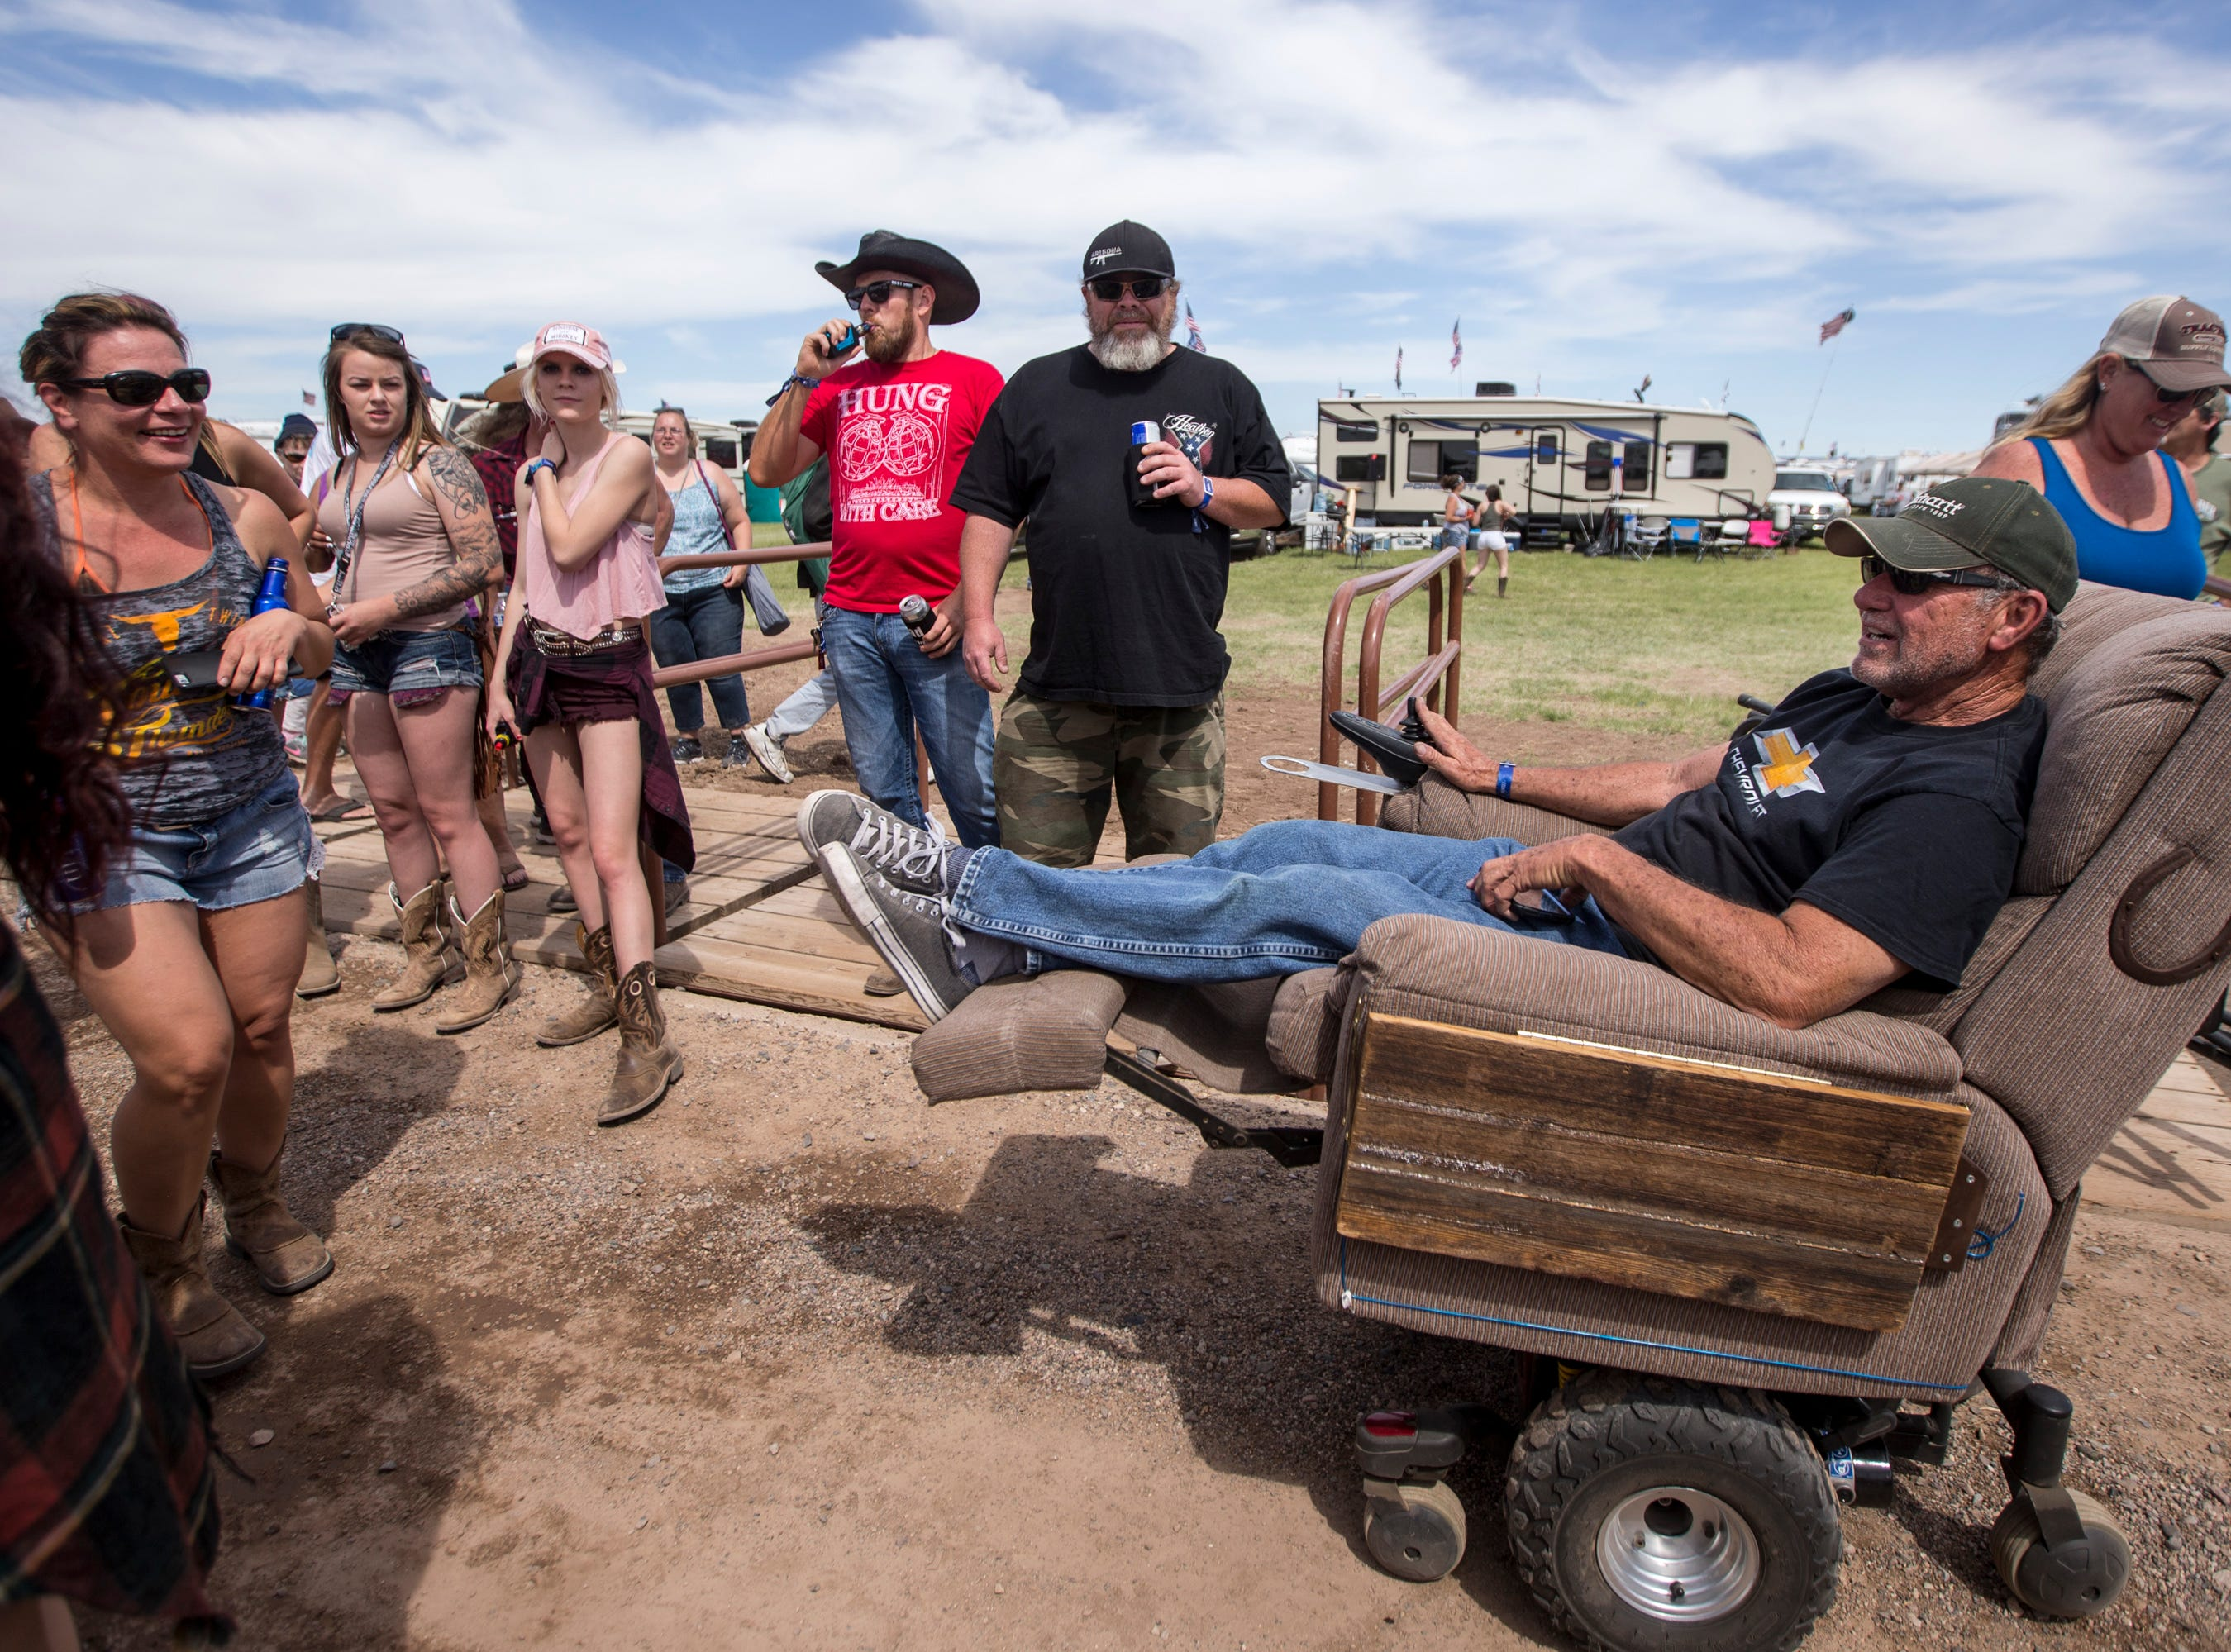 Kip Pageau drives his scooter chair near the entrance on April 11, 2019, during Day 1 of Country Thunder Arizona in Florence.